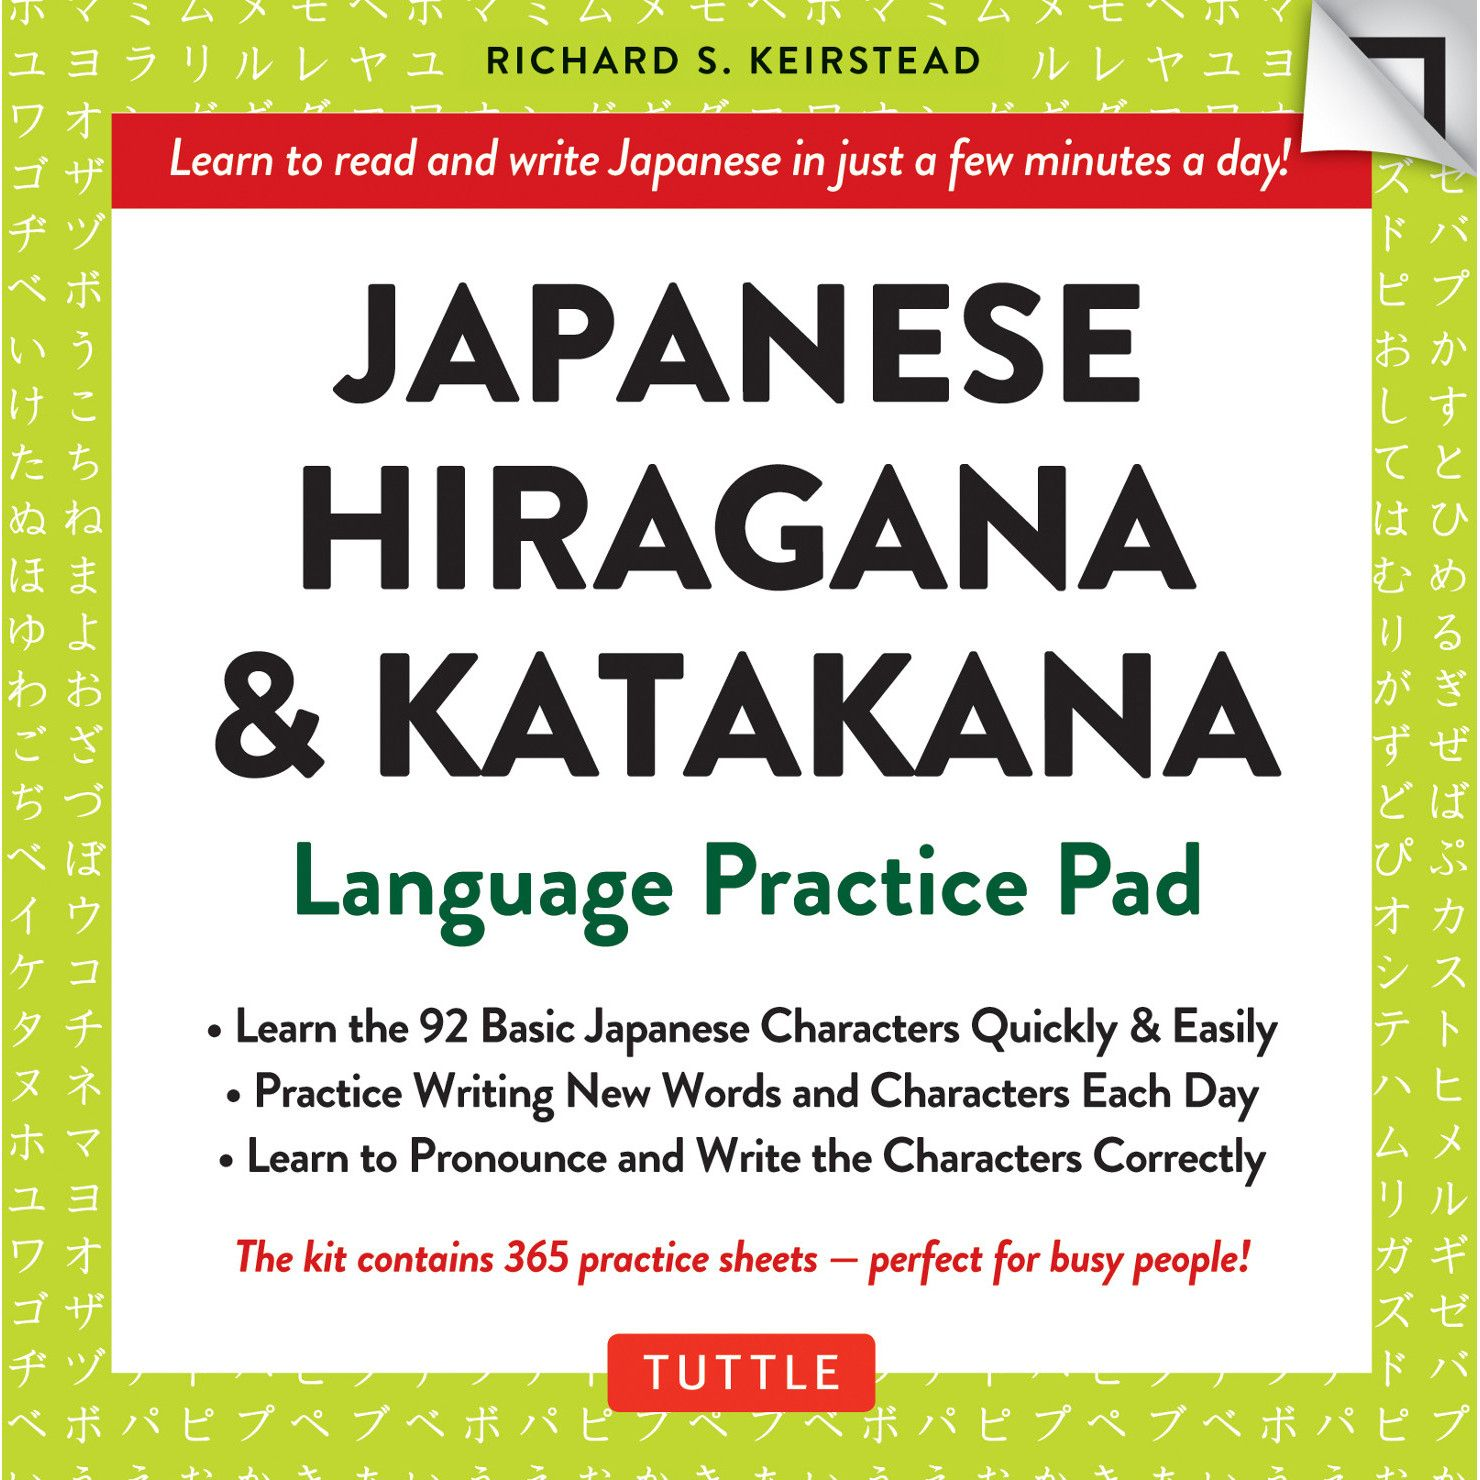 Japanese Hiragana & Katakana Practice Pad provides an enjoyable and motivating way for the learner to have practice in writing the syllables of the Japanese hiragana and katakana writing systems. There are a total of 365 practice sheets—one per day for a year of learning, or more than one per day for faster progress!—as well as basic instructions and extra sheets of blank squared paper for extra practice.